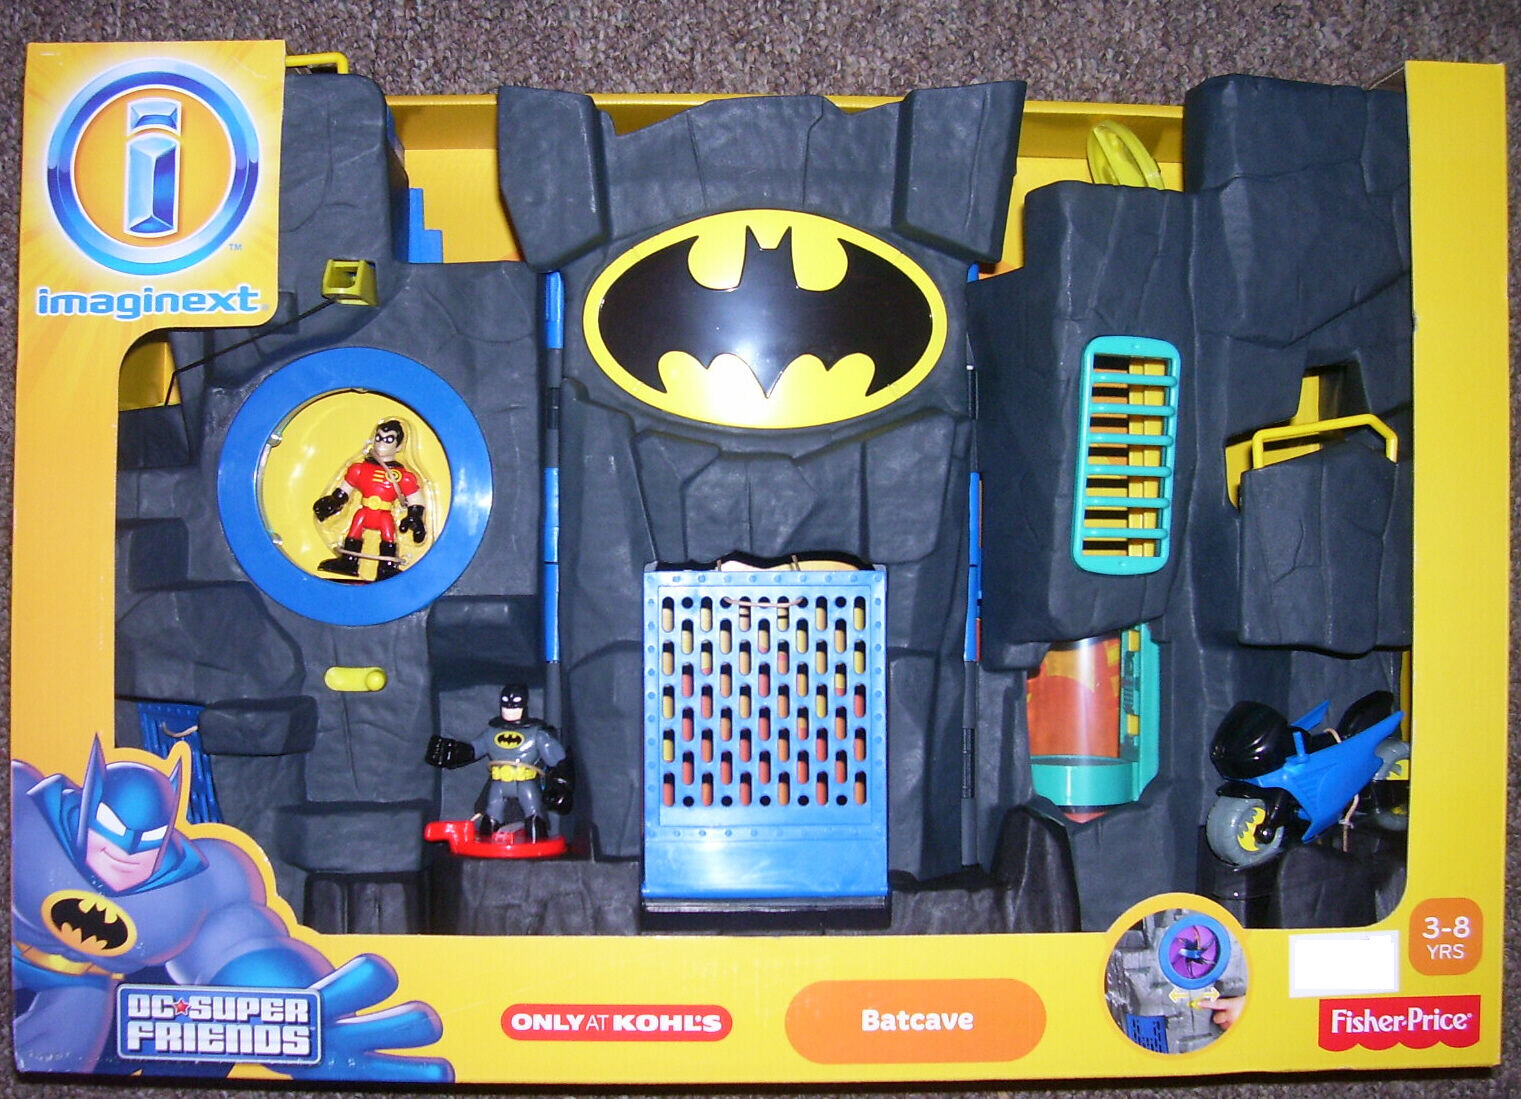 Fisher Price Imaginext Super Friends Batcave Playset in ...